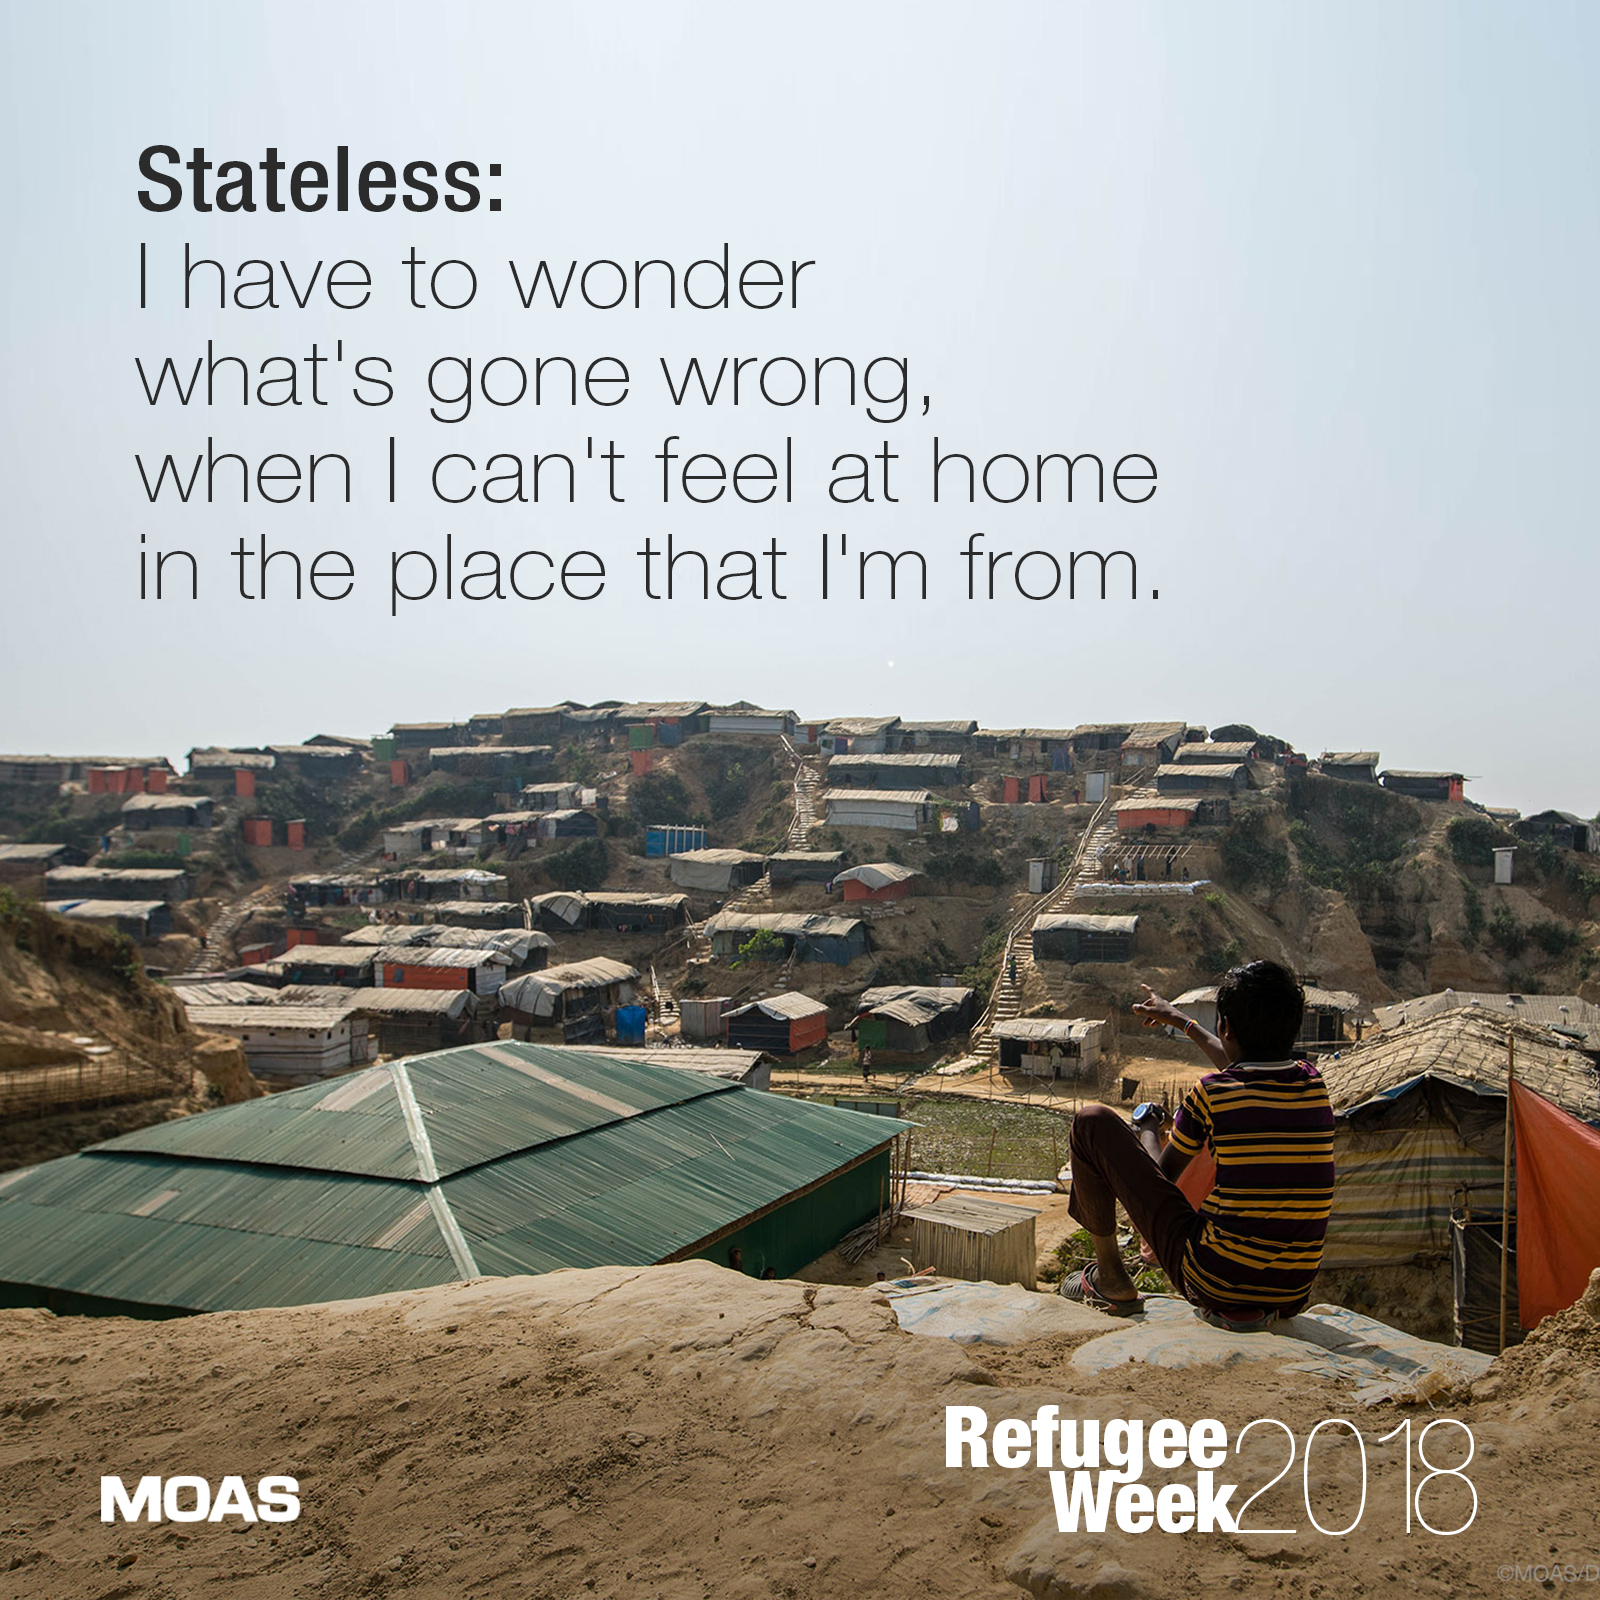 refugee-week—MOAS—POEM (1)